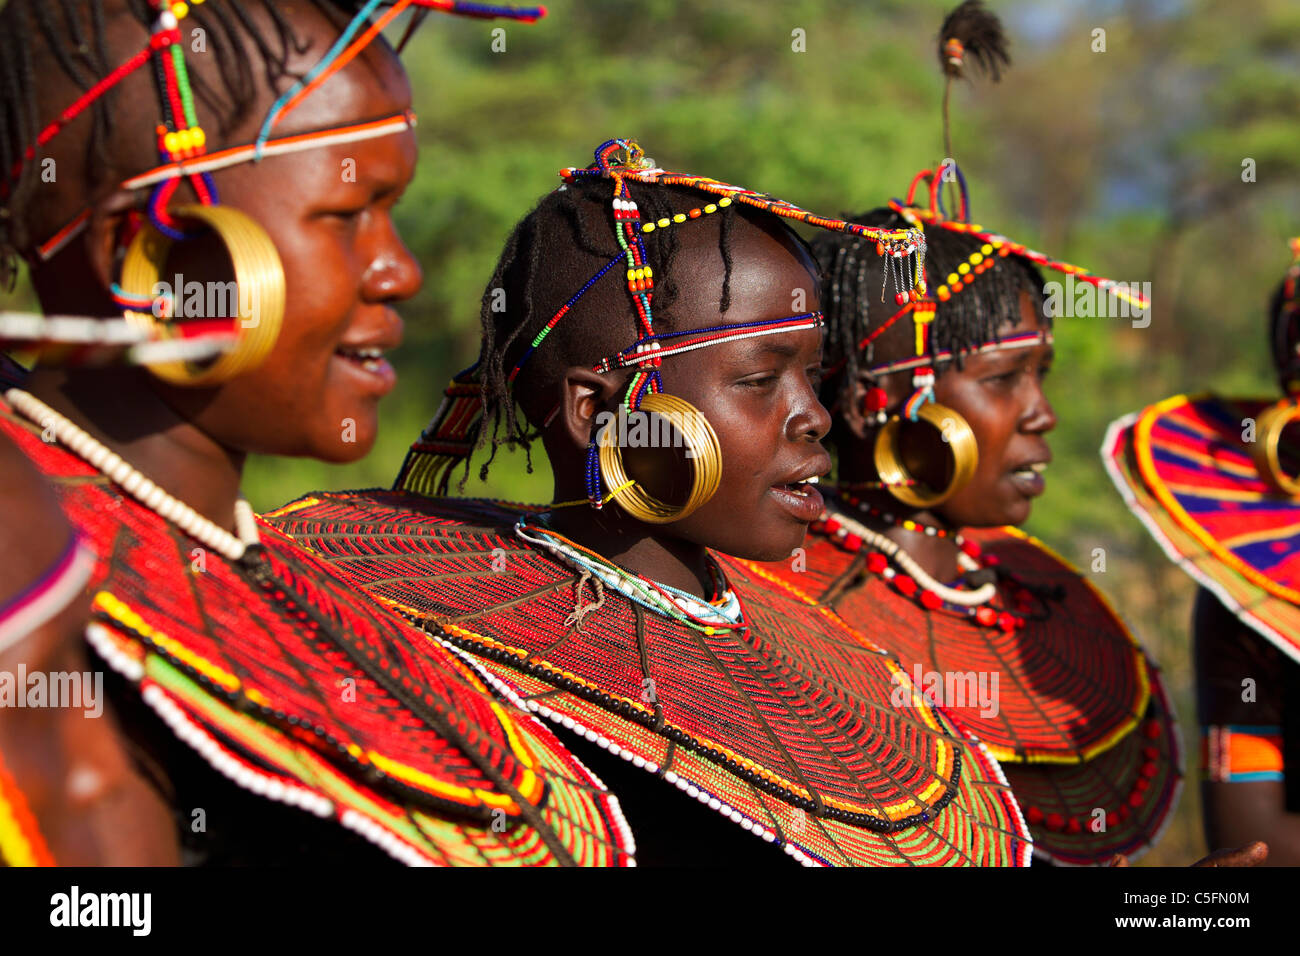 http://c8.alamy.com/comp/C5FN0M/pokot-people-doing-traditional-dancing-they-live-in-the-west-and-baringo-C5FN0M.jpg